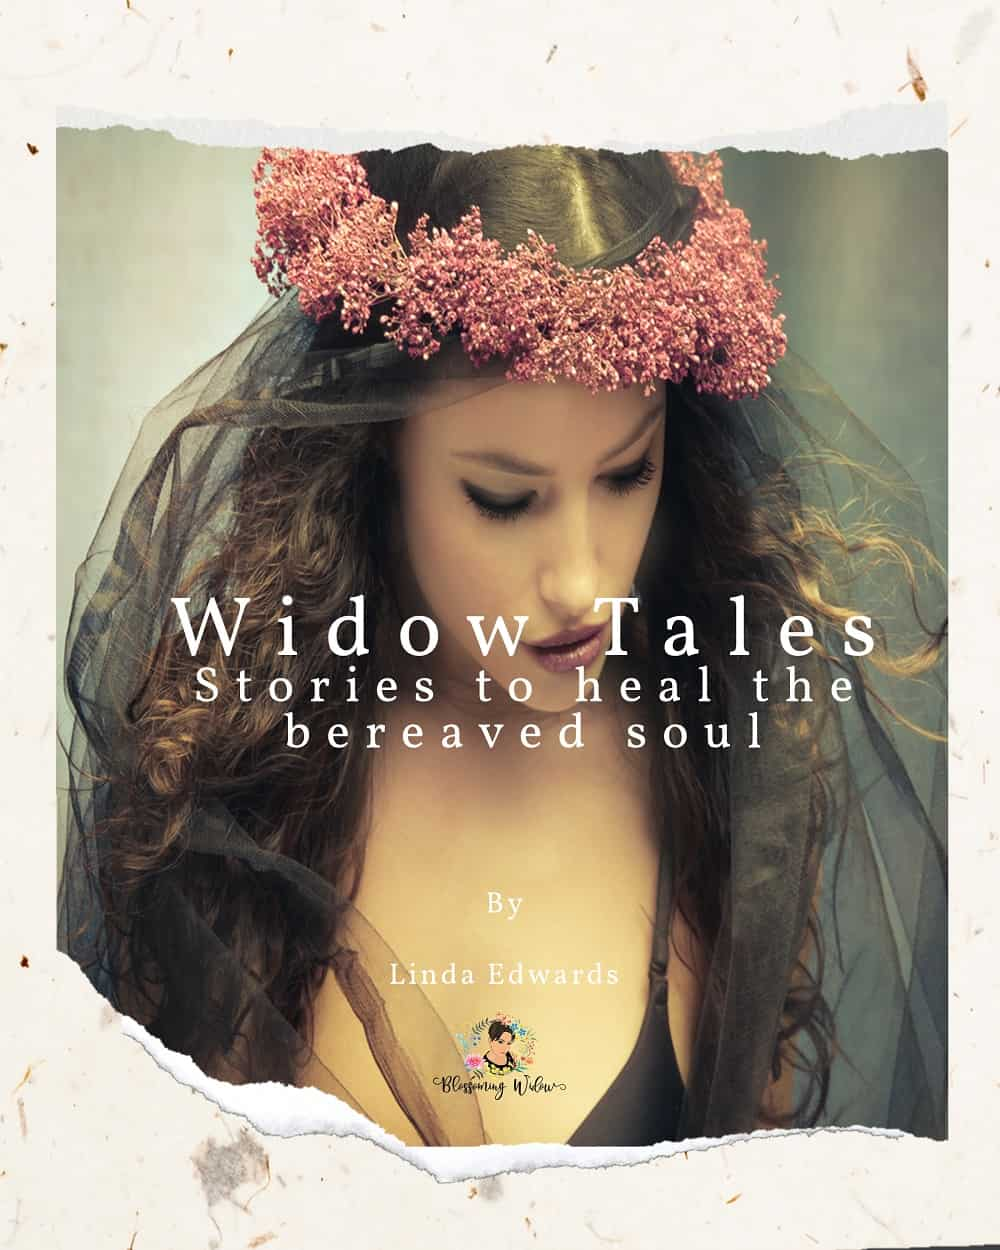 Widow Tales - Stories to heal the bereaved soul